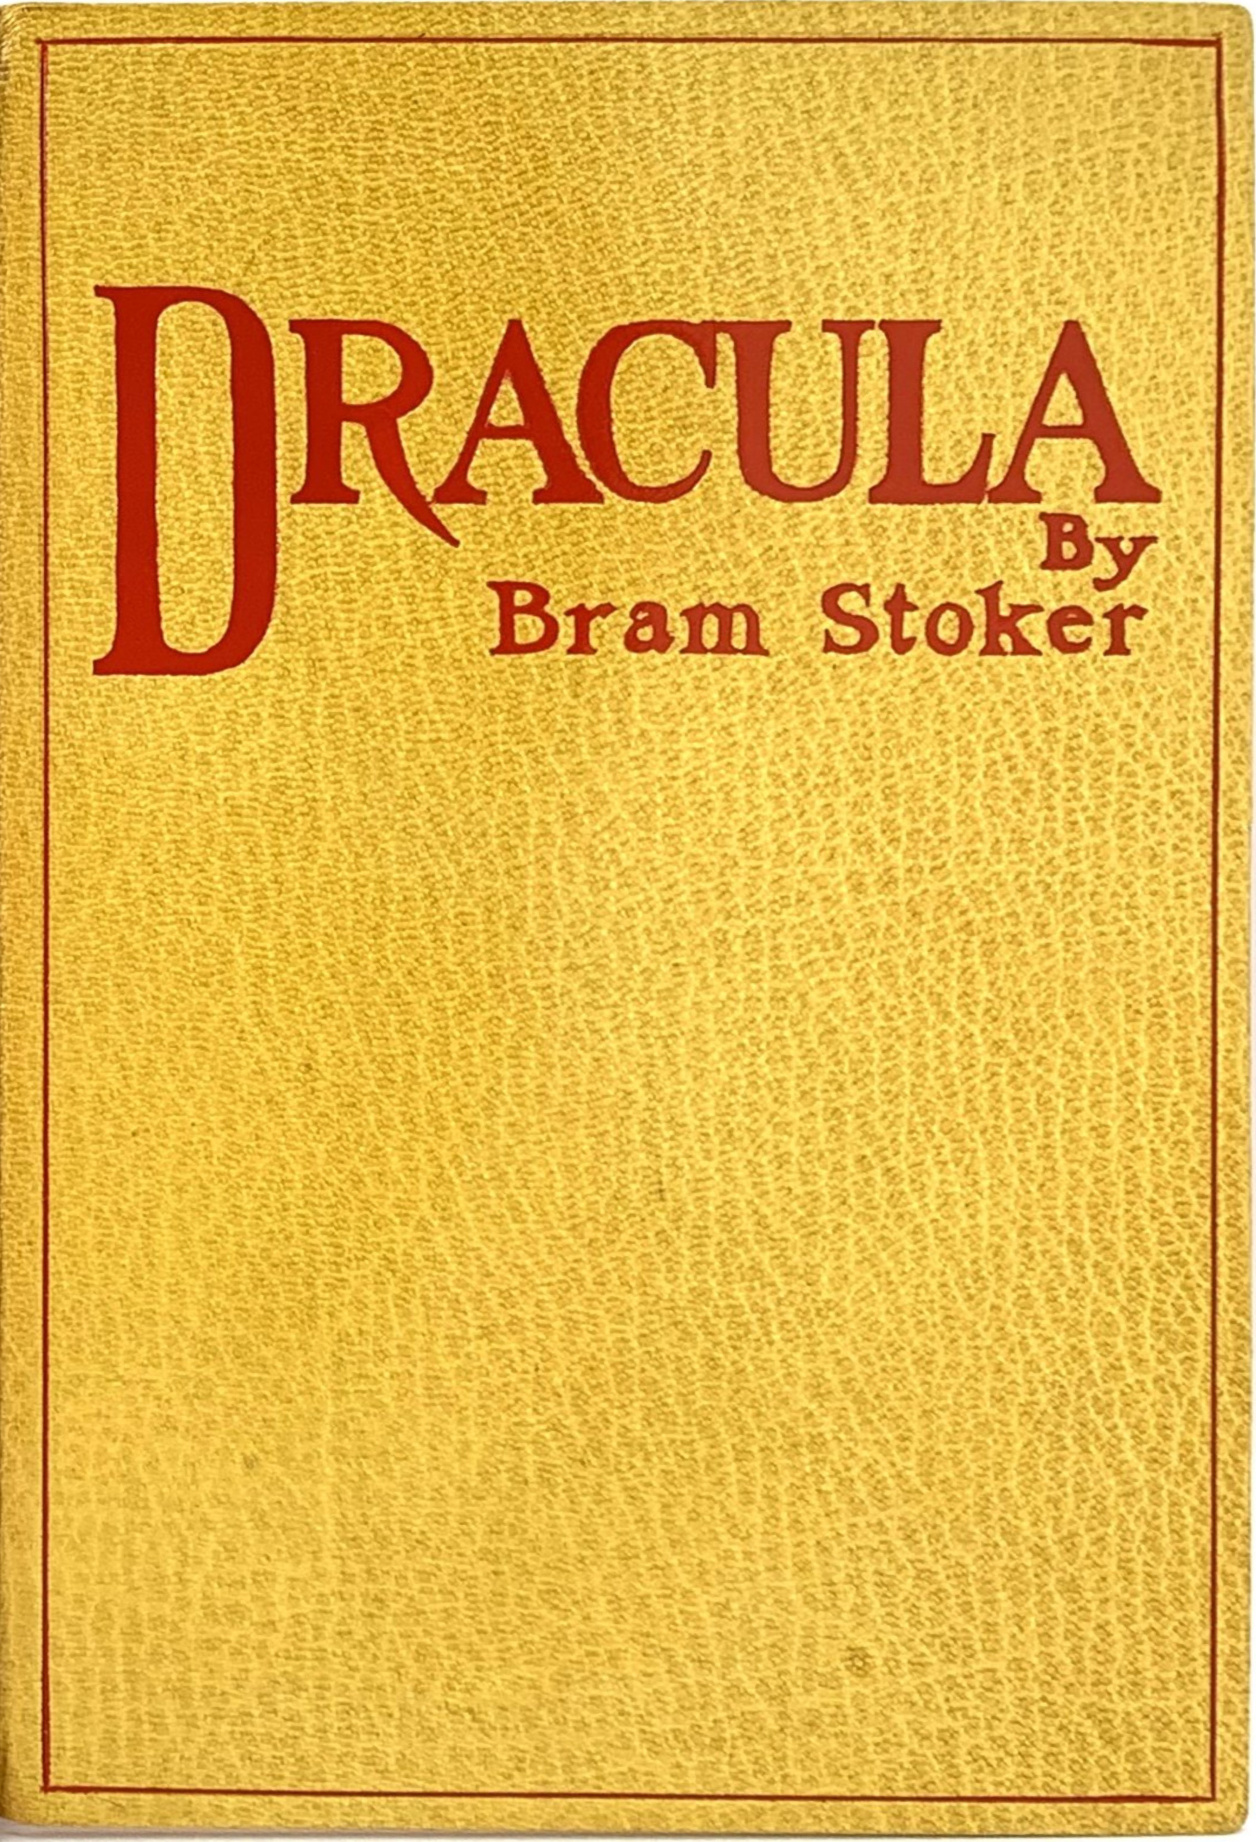 Dracula (first edition cover), Bram Stoker's v...